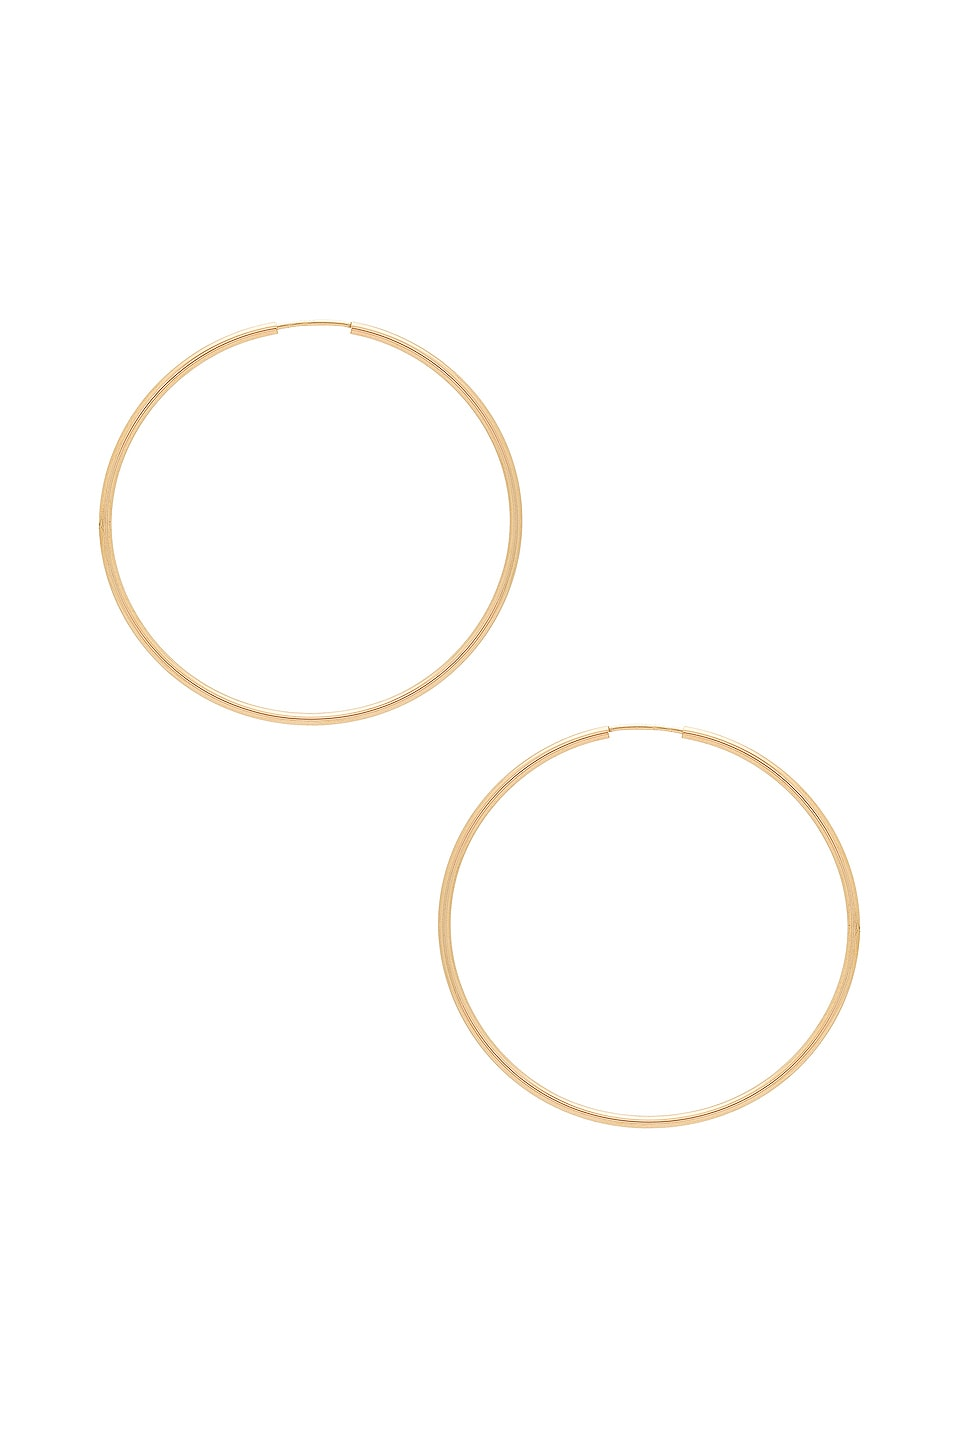 ERTH Hoop II Earrings in Gold